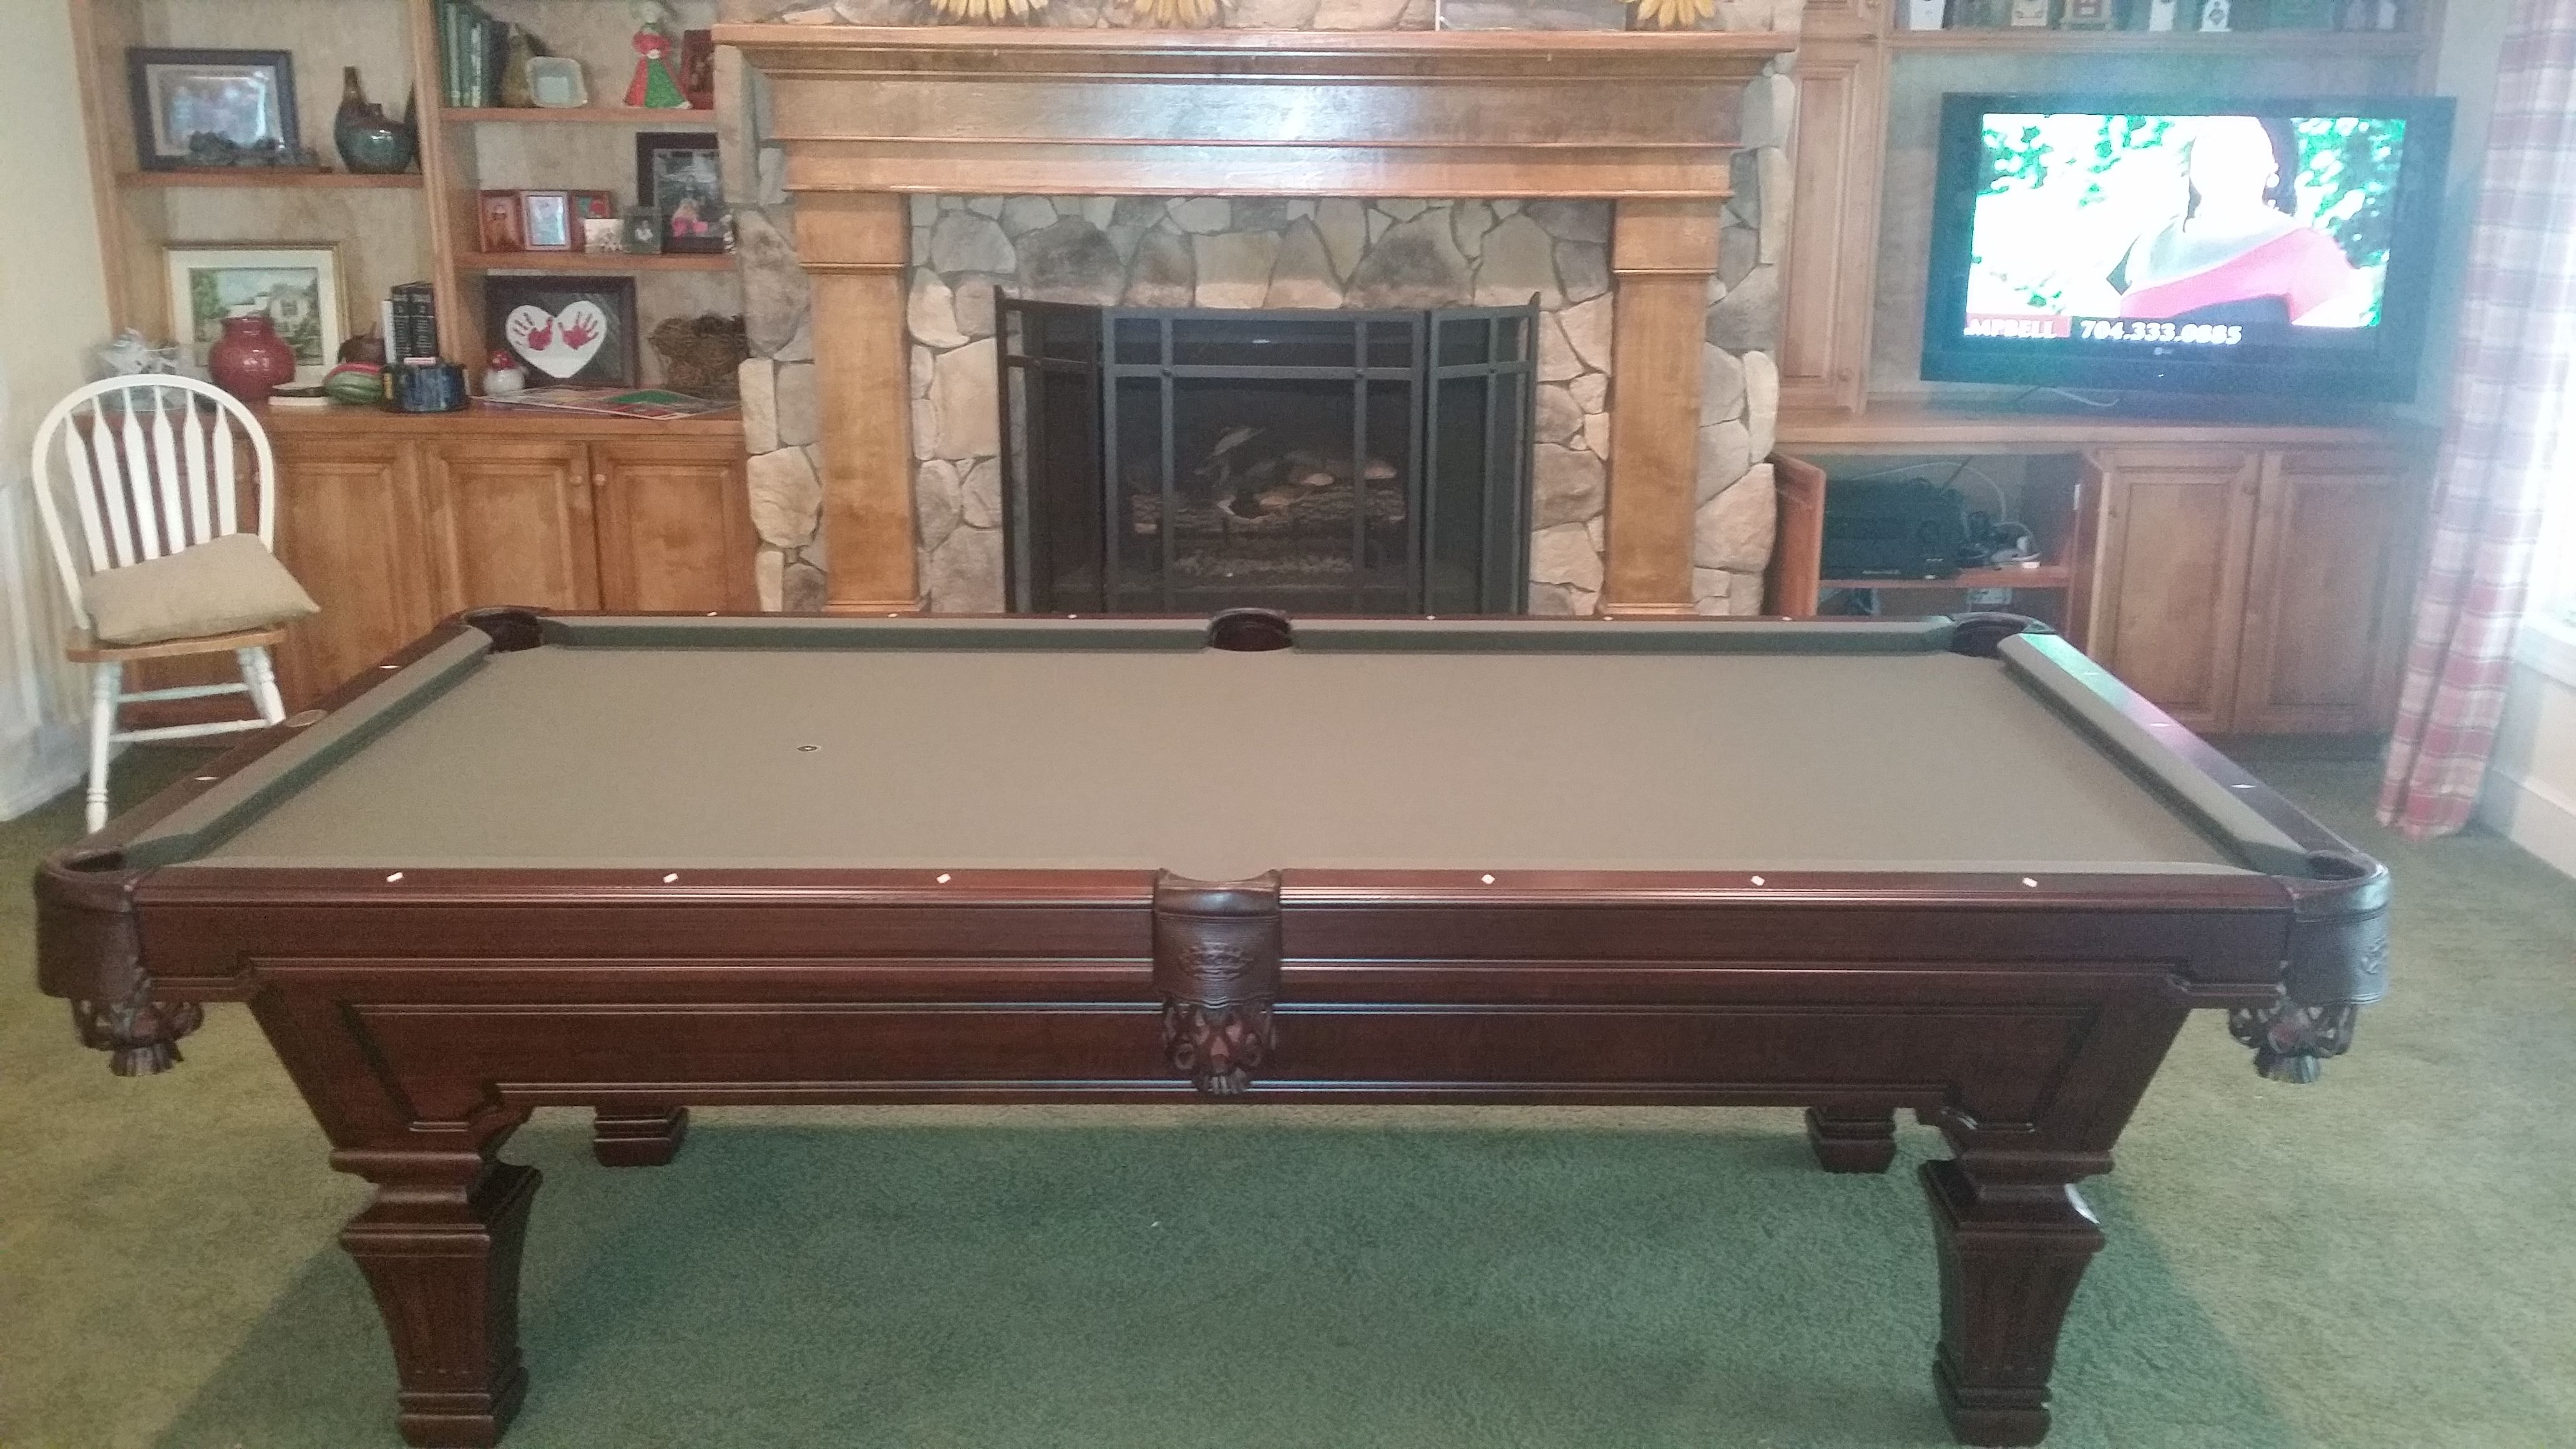 Olhausen Hampton Sold And Installed By Everything Billiards In Mount Holly Nc Www Everythingbilliards Net Olhausen Pool Table Billiards Man Cave